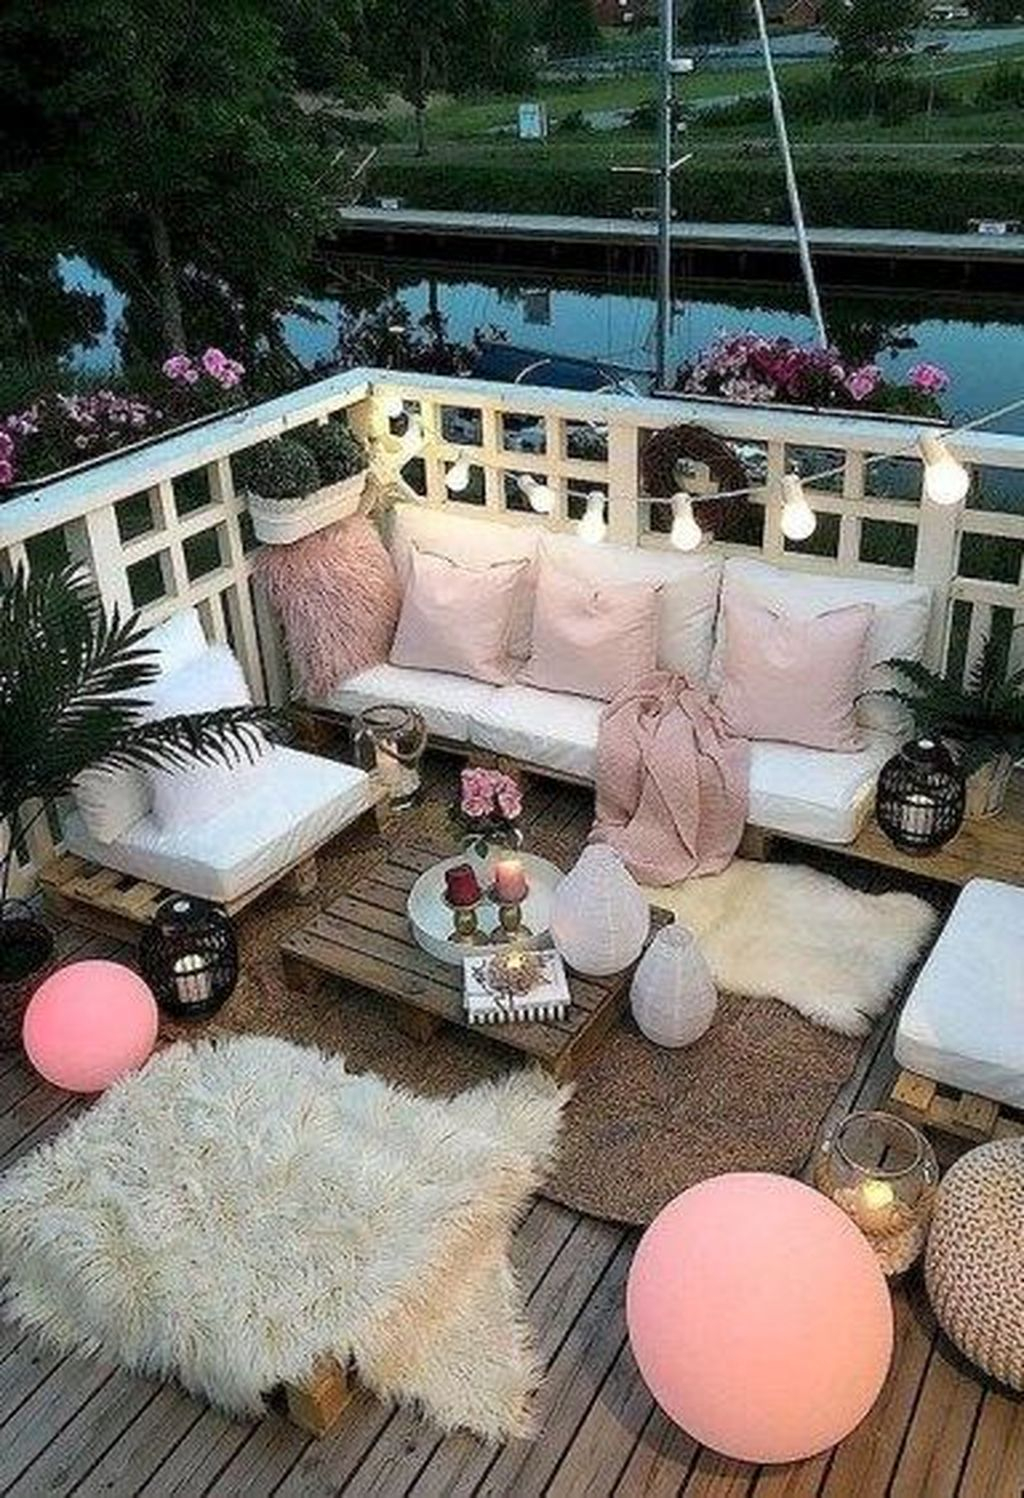 Enchanting Balcony Decoration Ideas For Apartment For A Cleaner Look 14